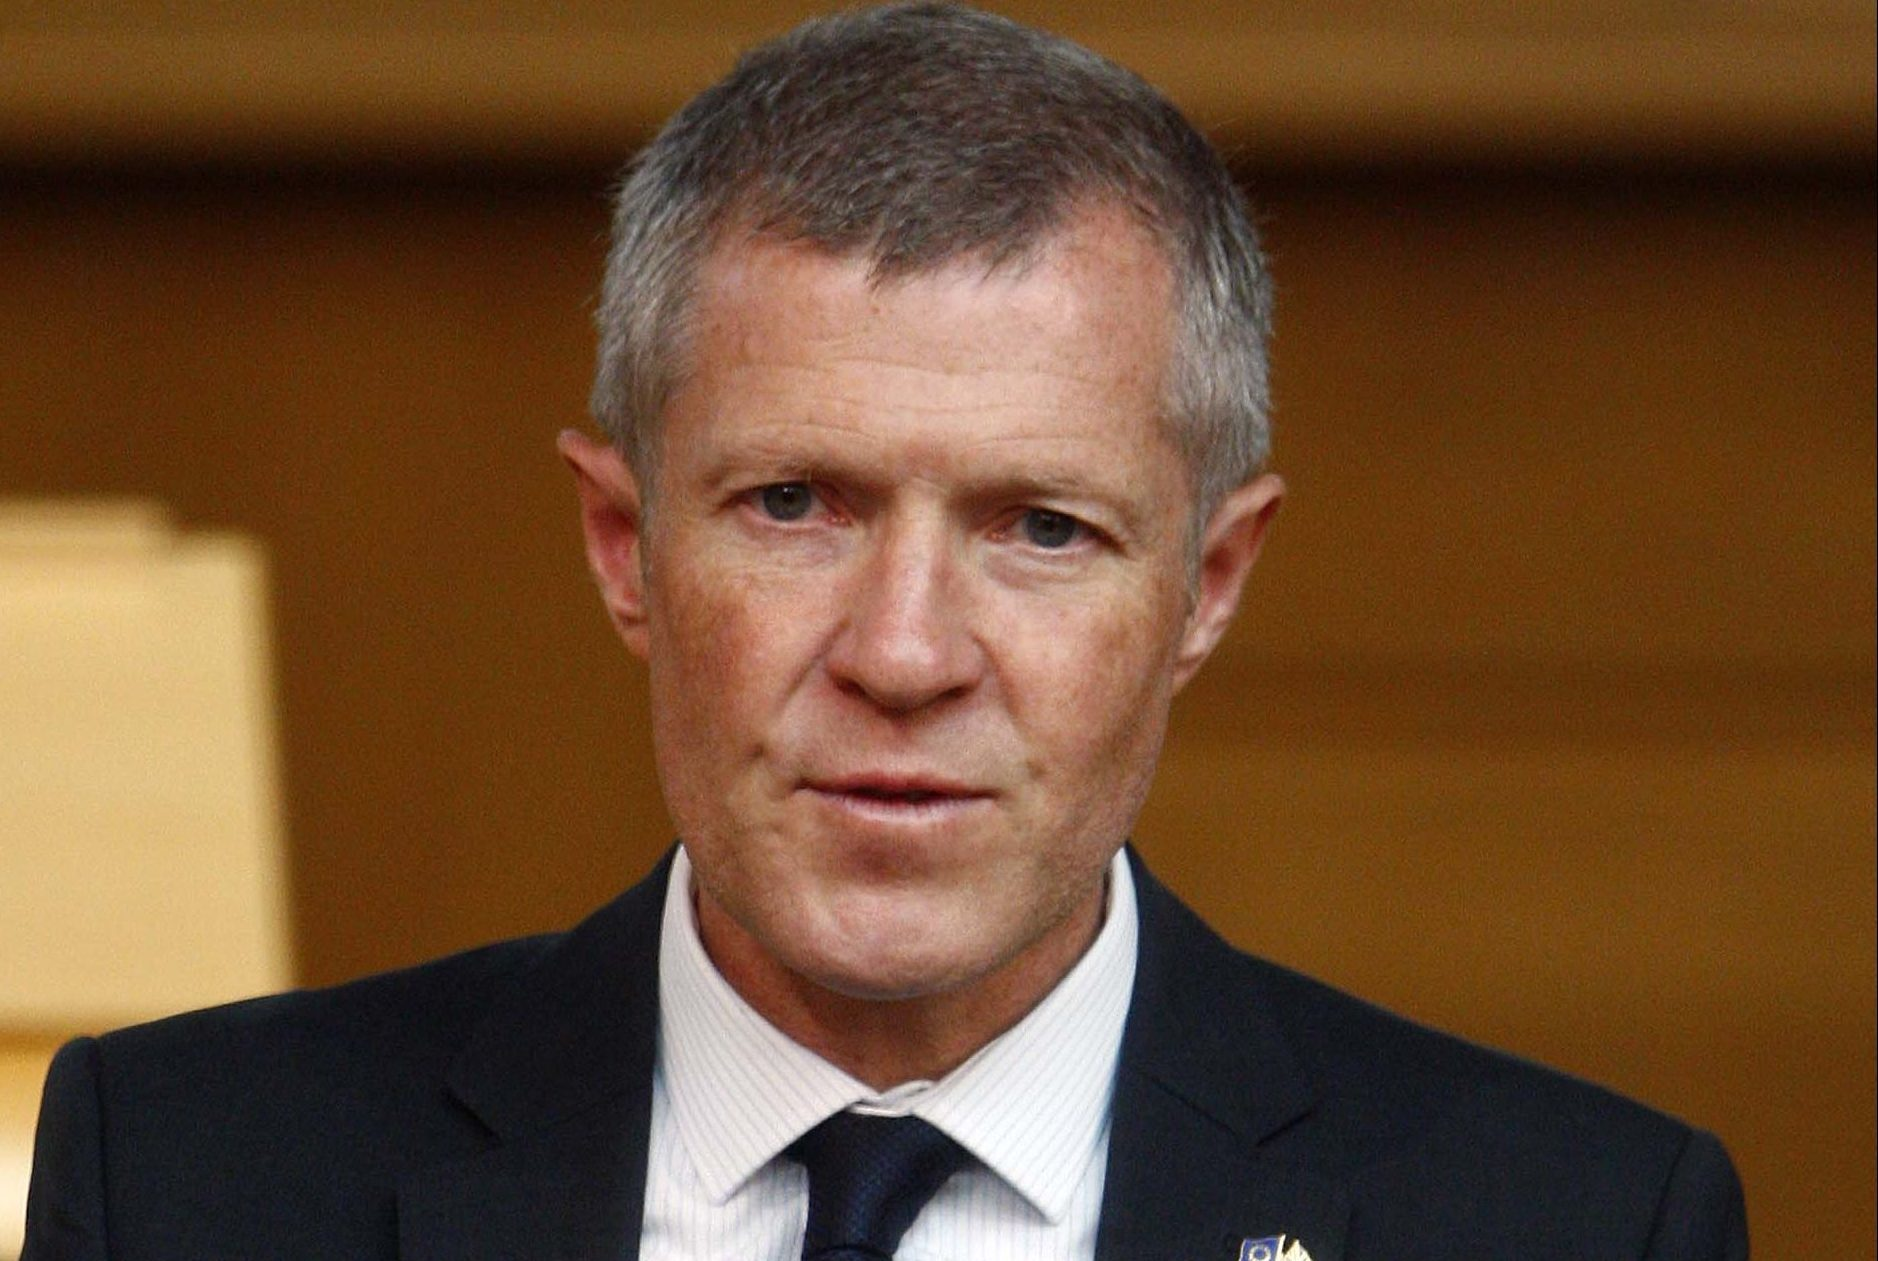 Leader of the Scottish Liberal Democrats Willie Rennie